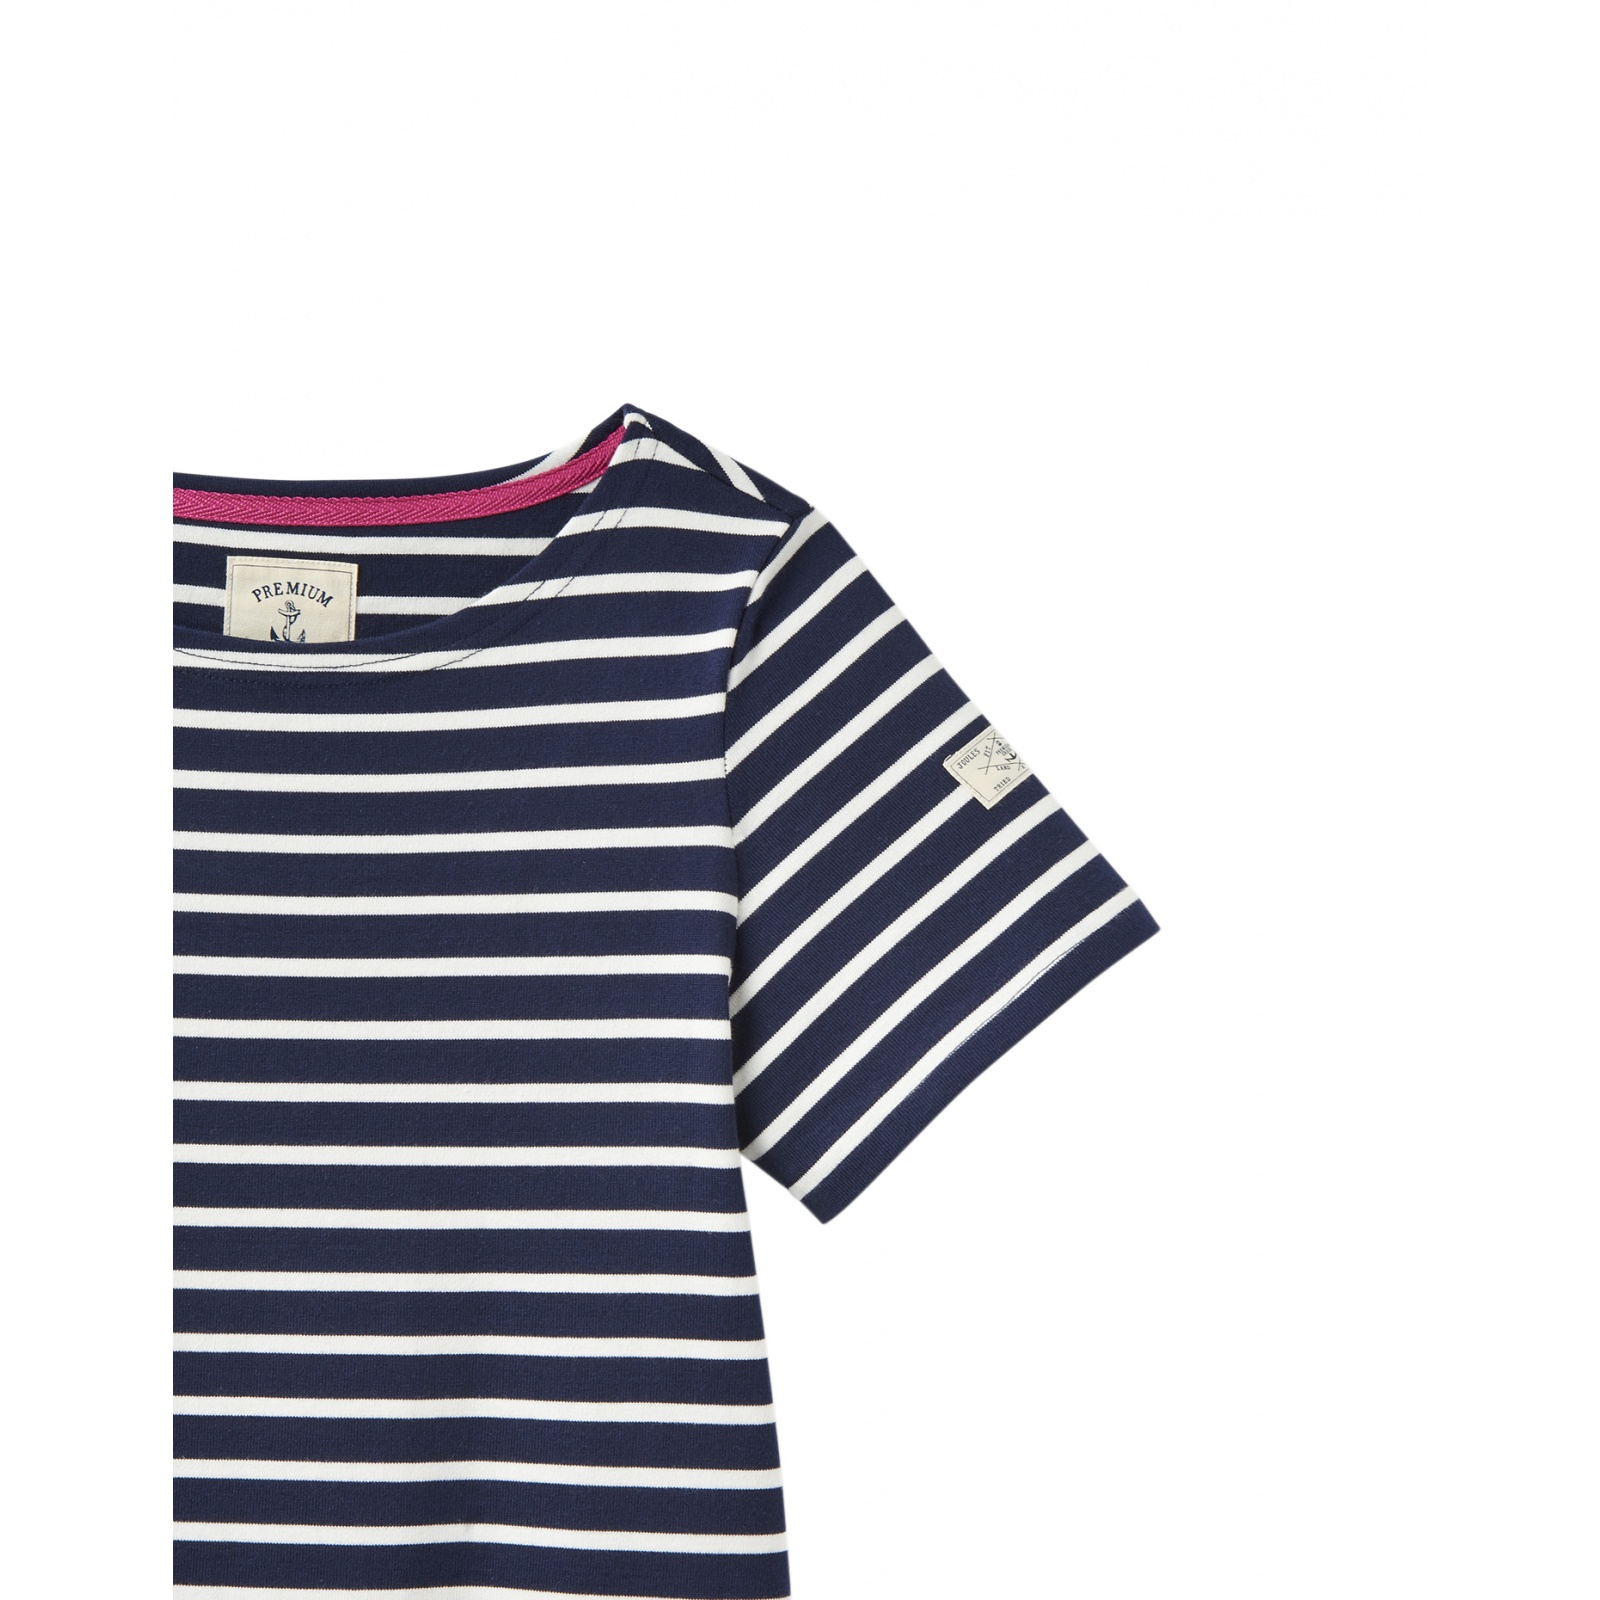 Joules-Riviera-T-Shirt-Dress-with-Short-Sleeves-SS19 miniature 23